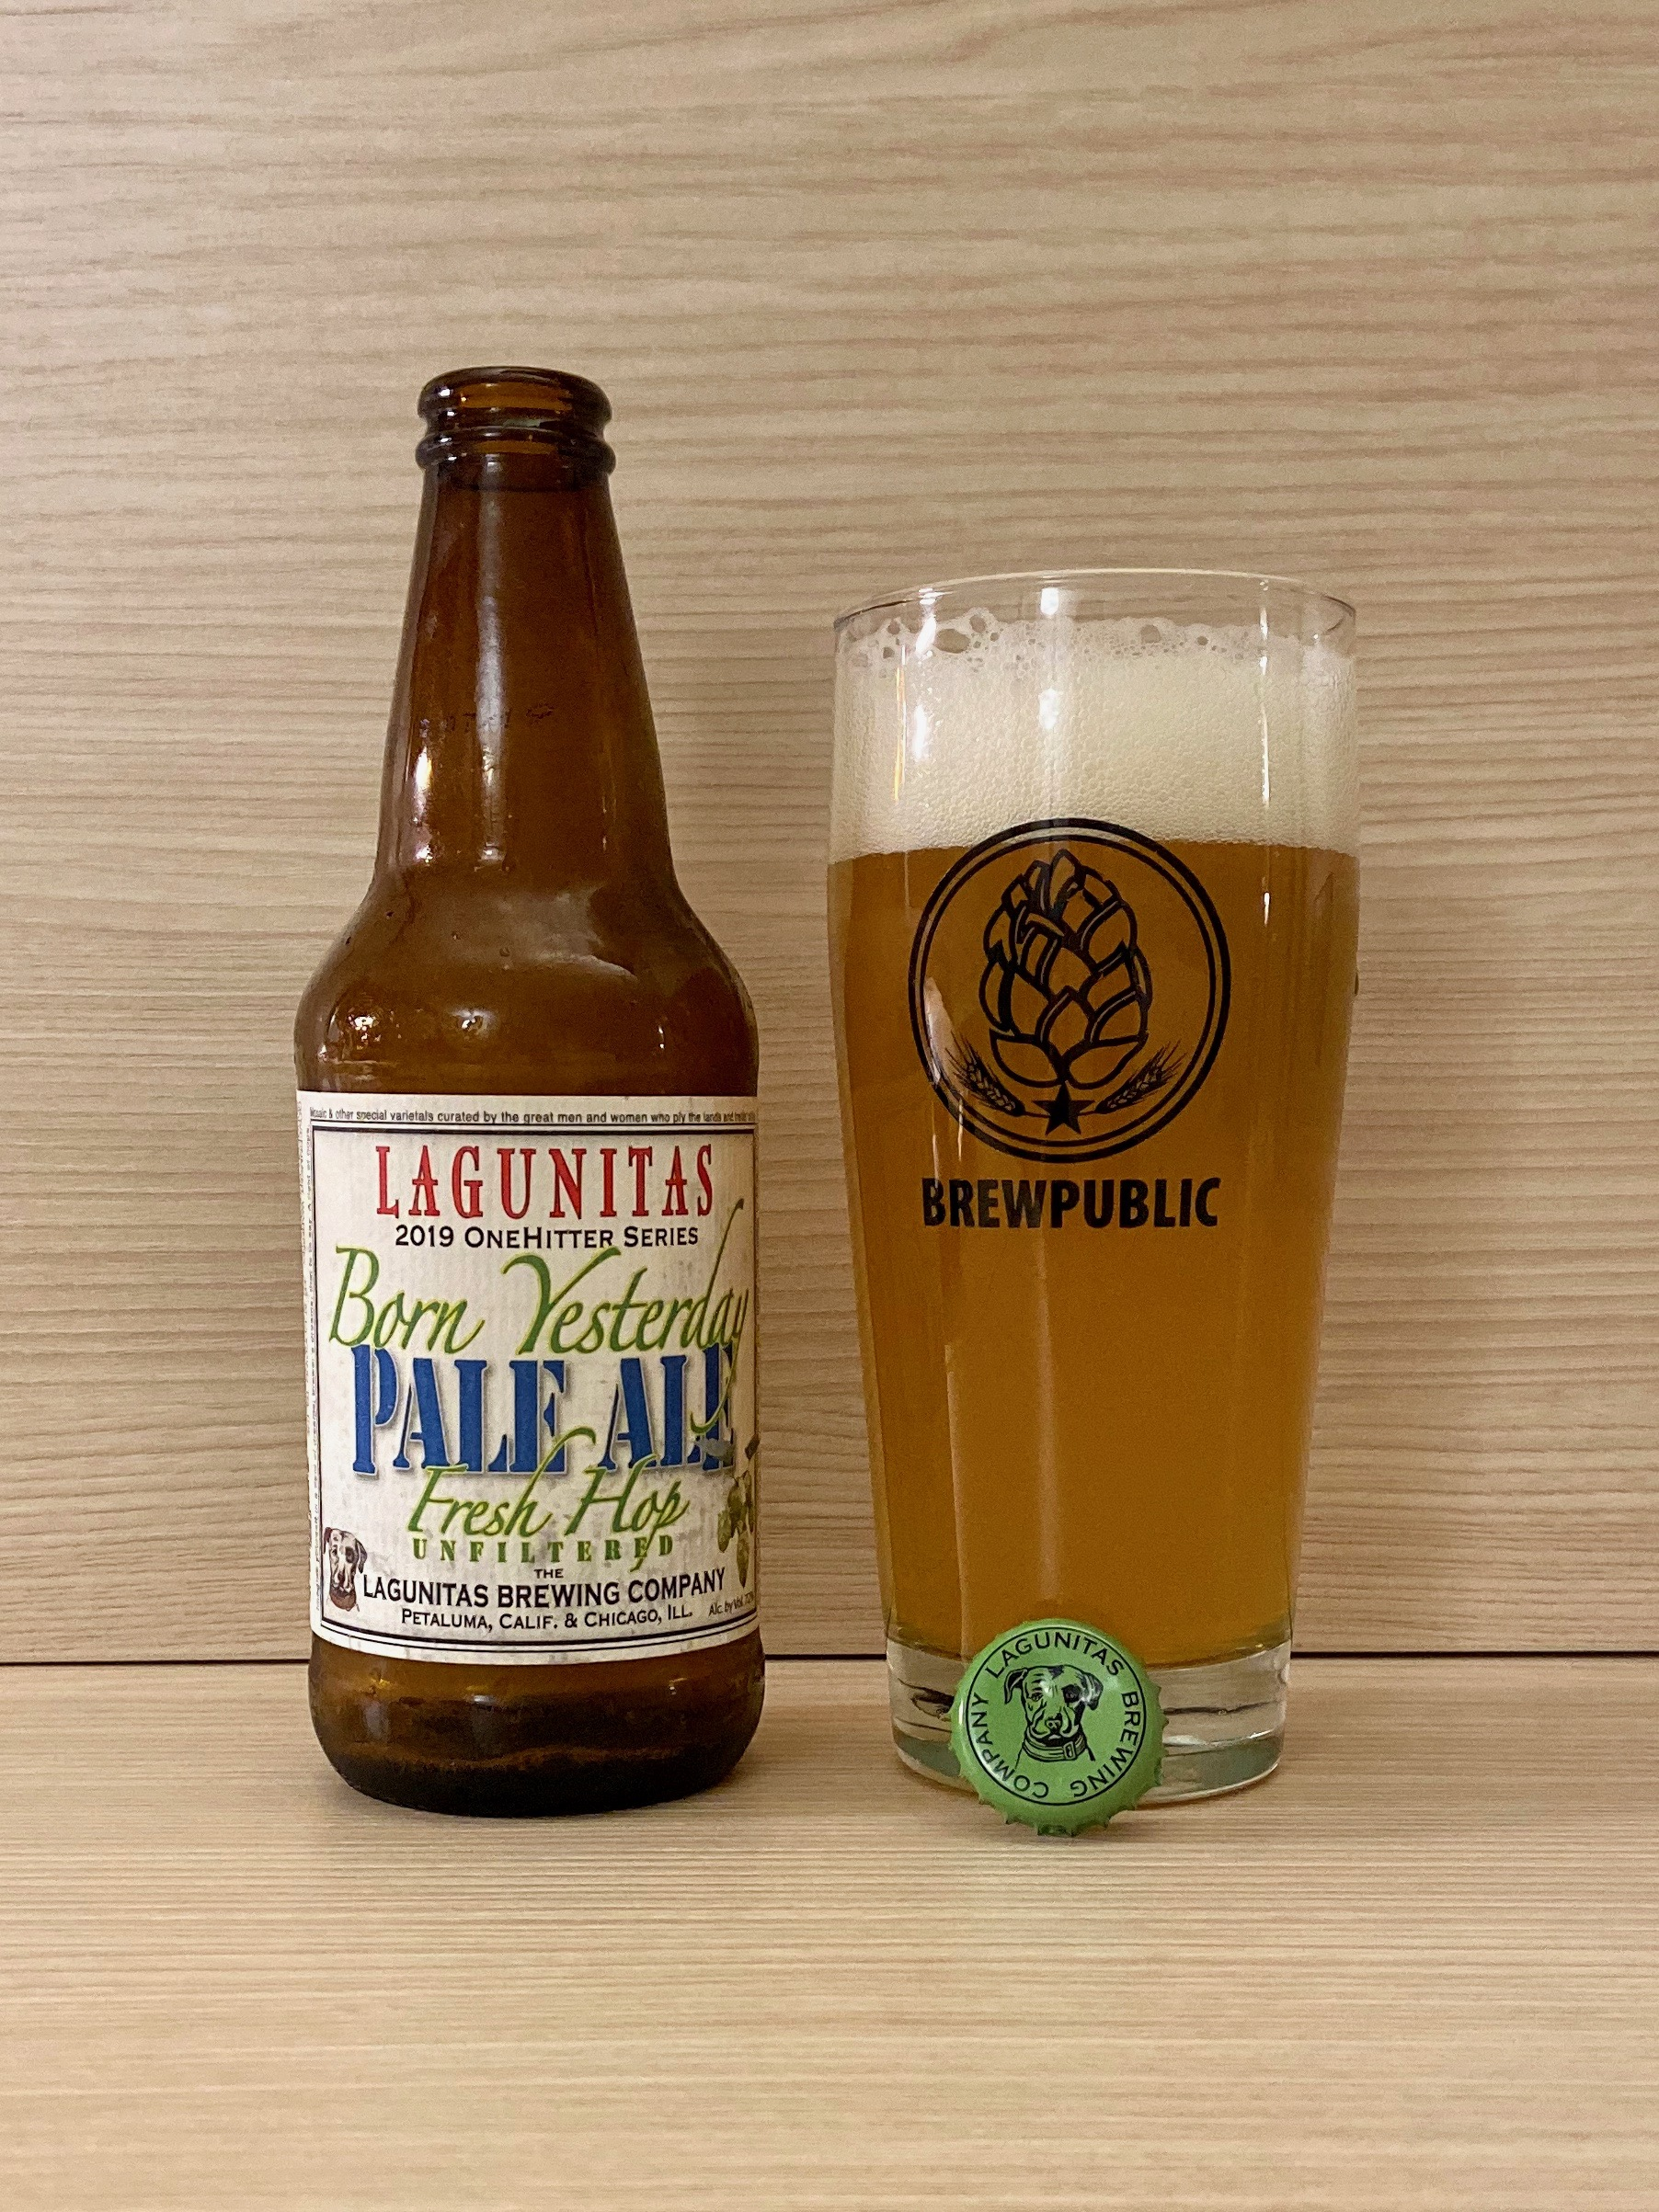 Lagunitas Brewing has released its 2019 Born Yesterday Fresh Hop Pale Ale in 12oz bottles.